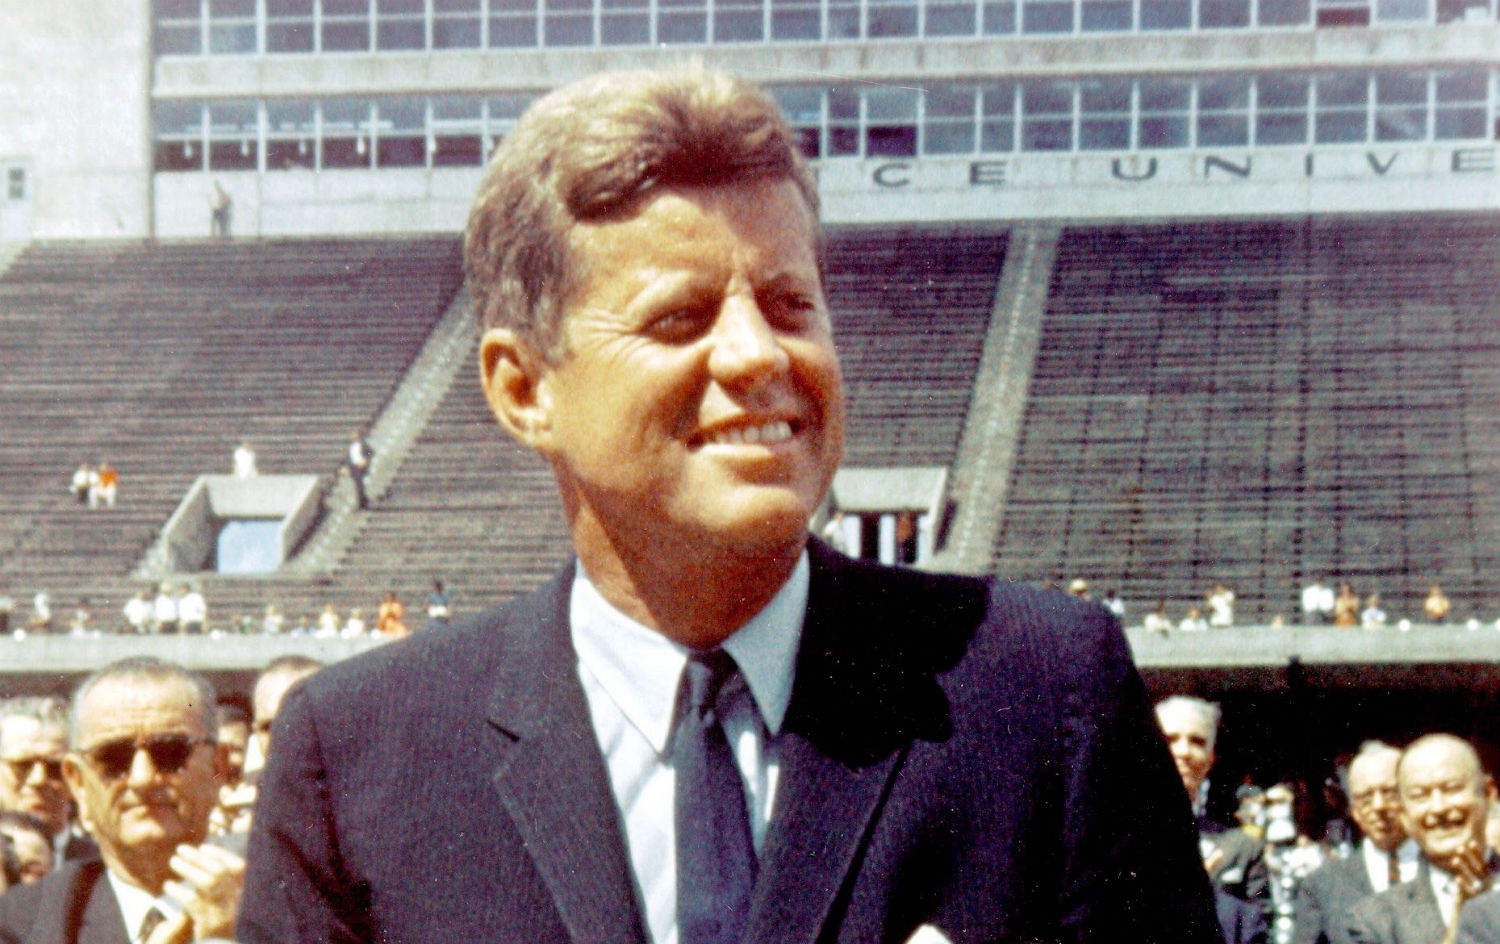 pJohn-F-Kennedy-speaking-at-the-Rice-University-in-Houston-Texas-in-1962.-Courtesy-Everett-Collection-Photo-by-Rex-USAp